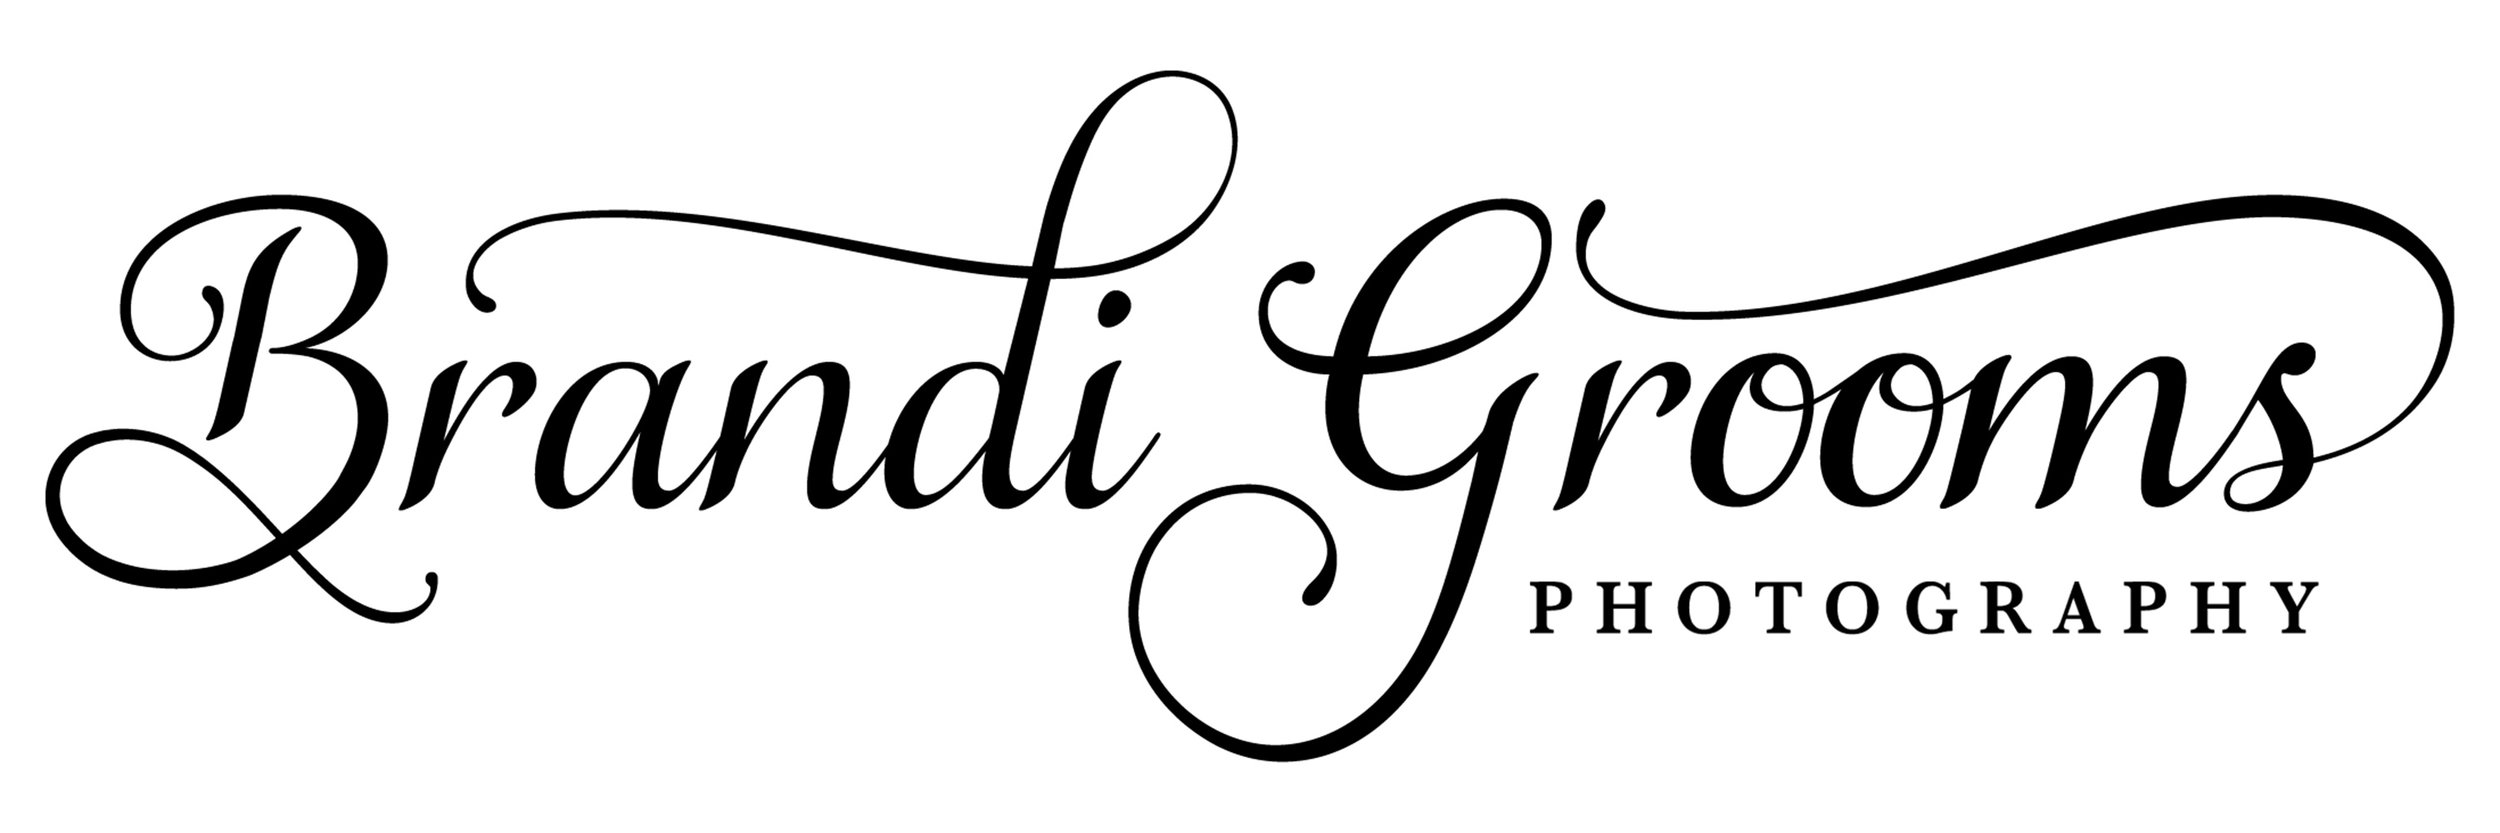 """Brandi Grooms Photography - Brandi is amazing at capturing hair images. Her true super power is helping women feel """"DIVINELY POWERFUL, FEMININE, AND FREE"""" through boudoir photography."""